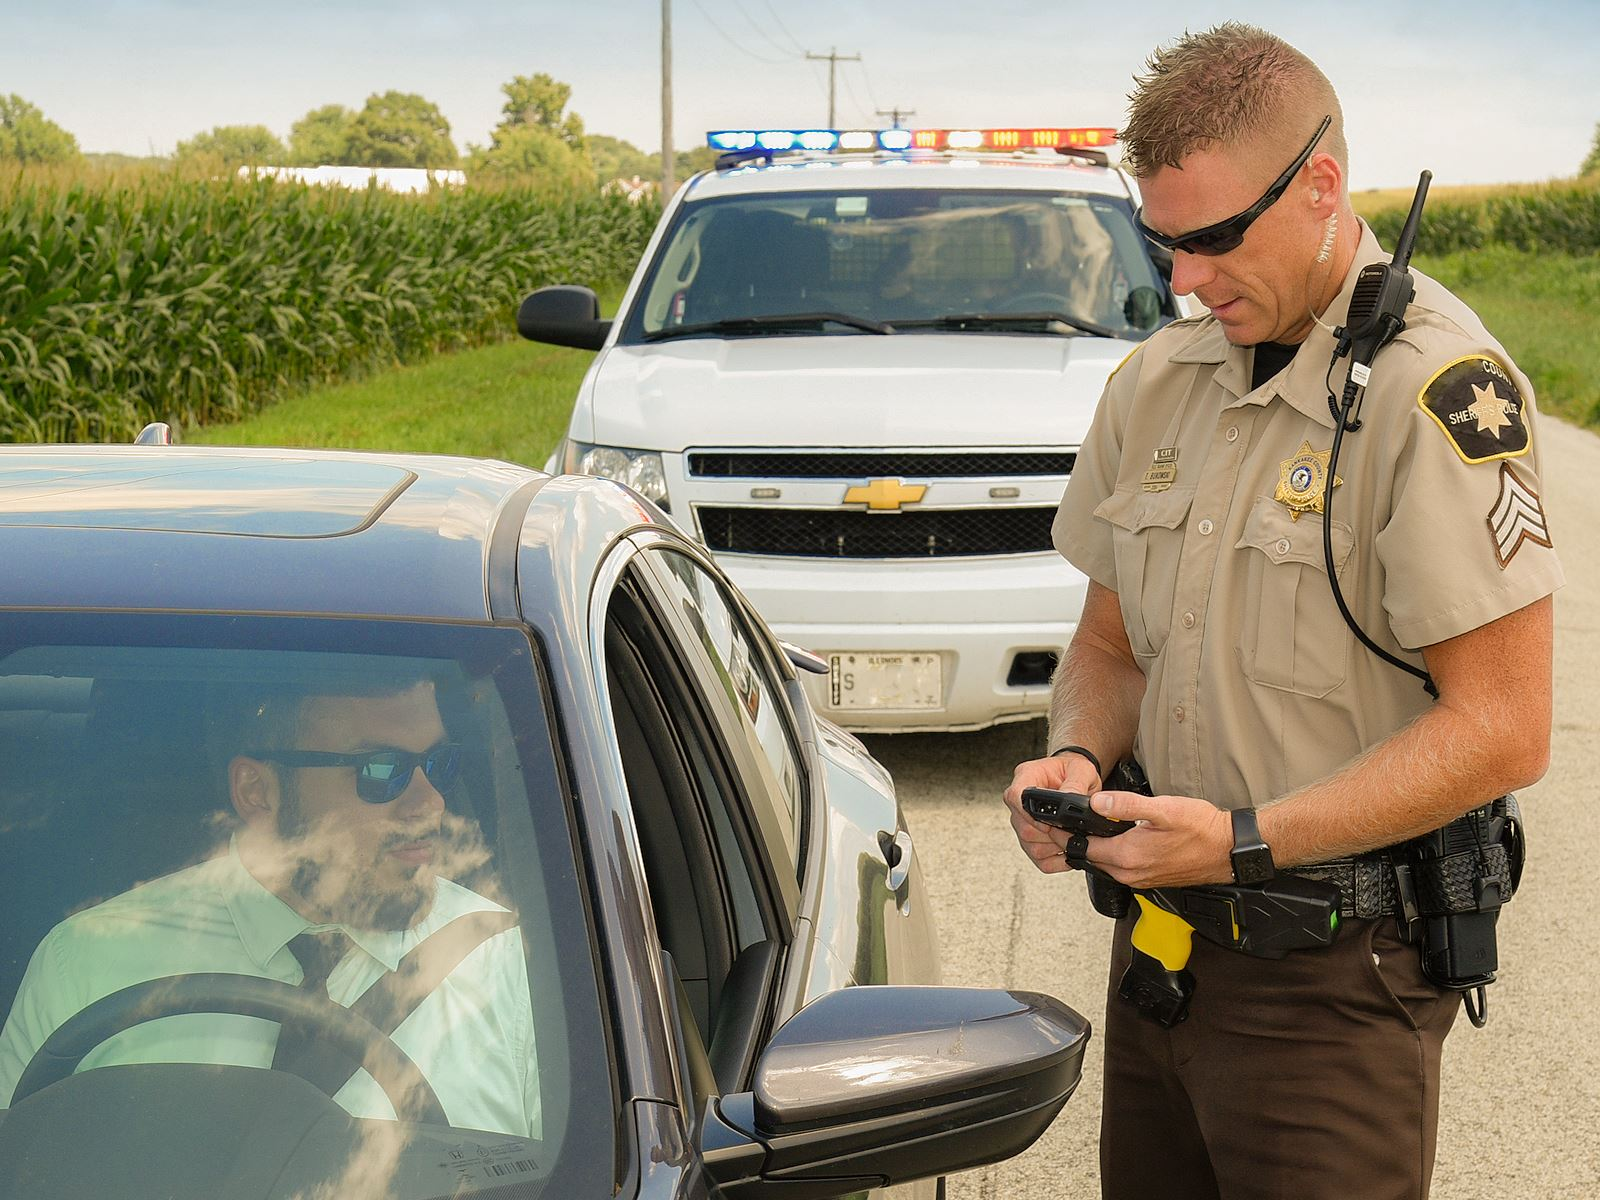 Spend Less Time on the Roadside<br>and Enhance Officer Safety